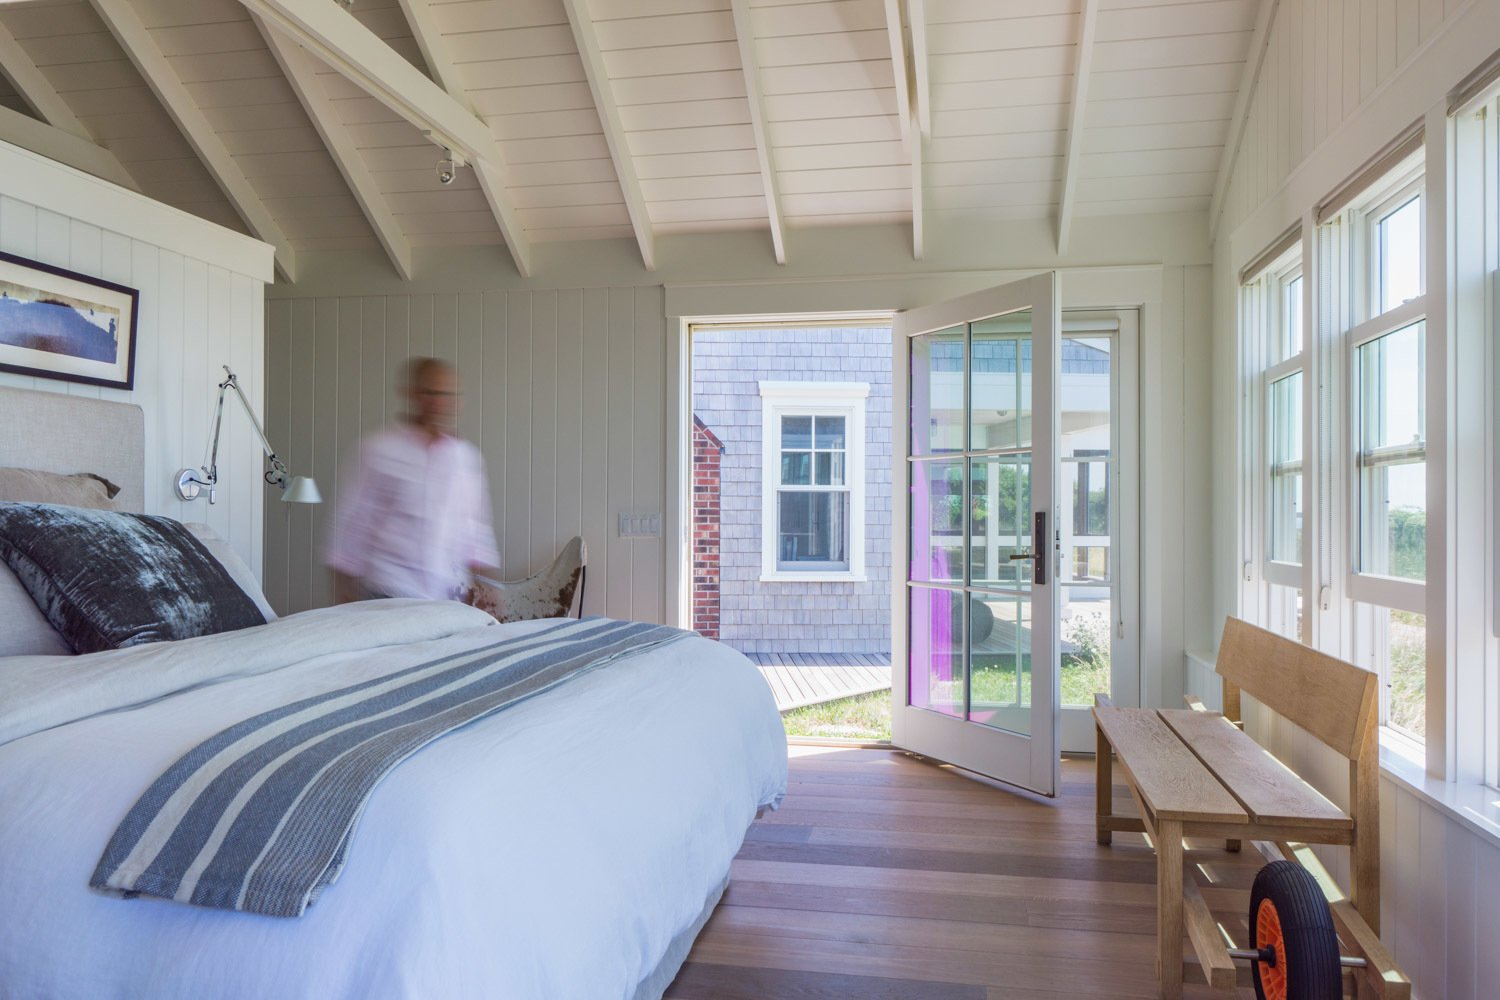 A modest bedroom sits functionally askew to the main part of the cottage to provide a panoramic view of Provincetown harbor - a spectacular view of twinkling nighttime shore lighting as the dunes curve toward the tip of Cape Cod. The open french door leads to a secluded hot tub and deck area.  Corkin House